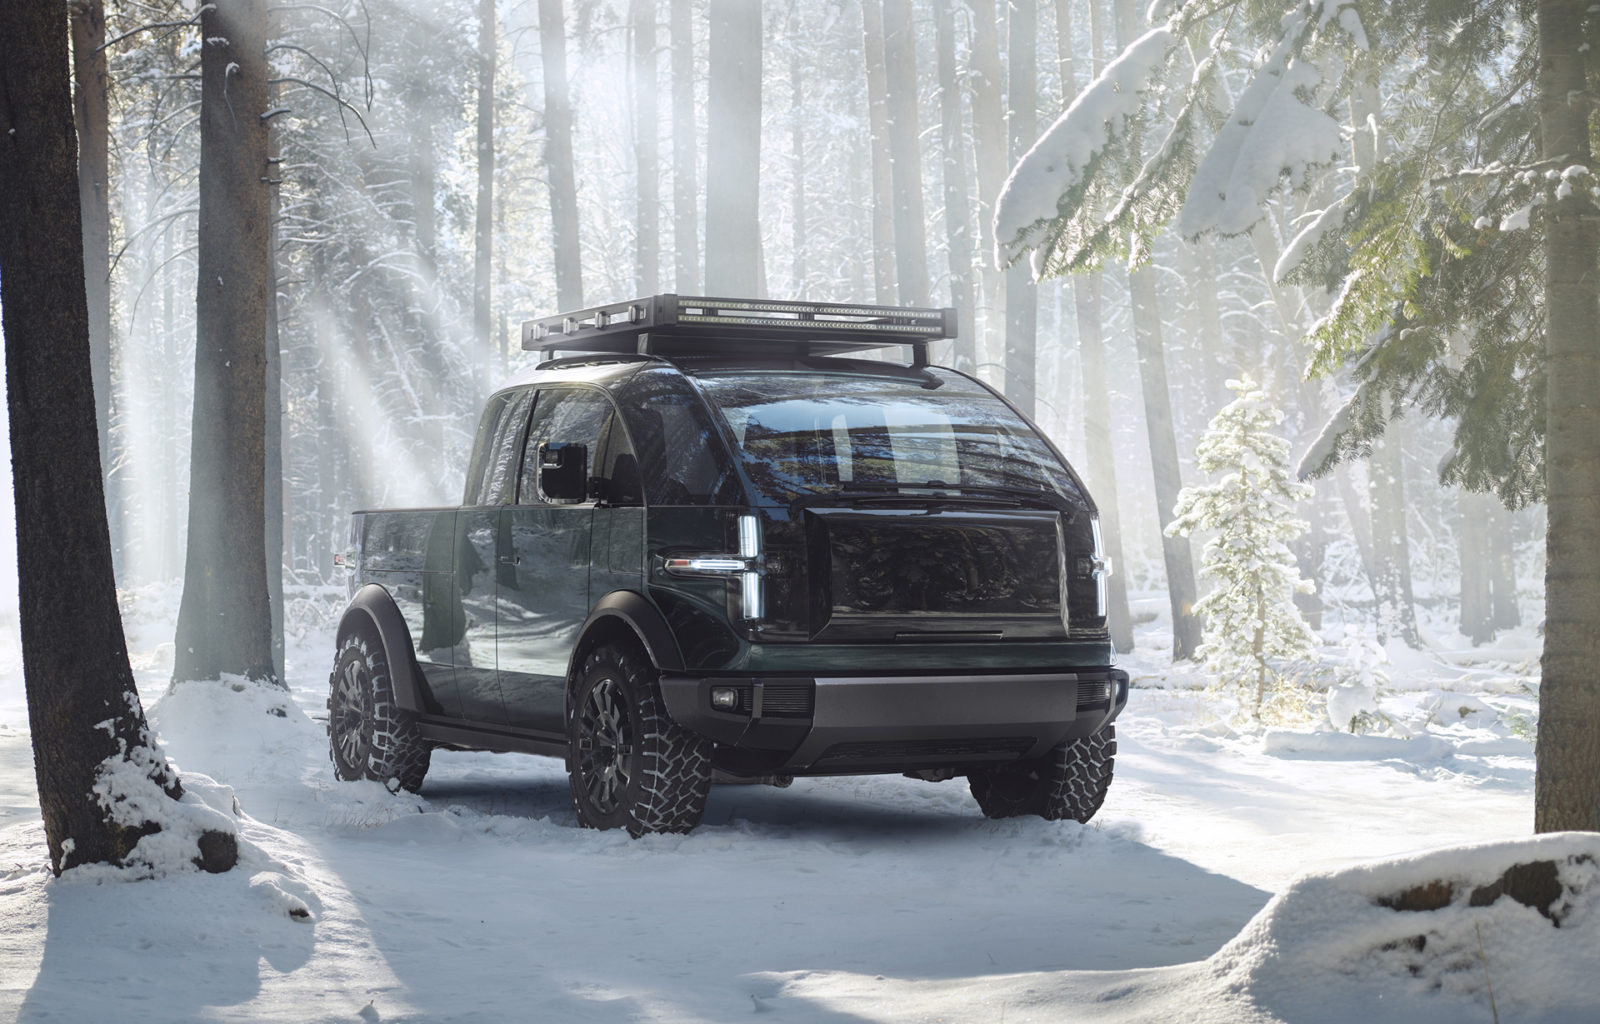 ev-startup-canoo-to-challenge-tesla-cybertruck-with-flexible-pickup